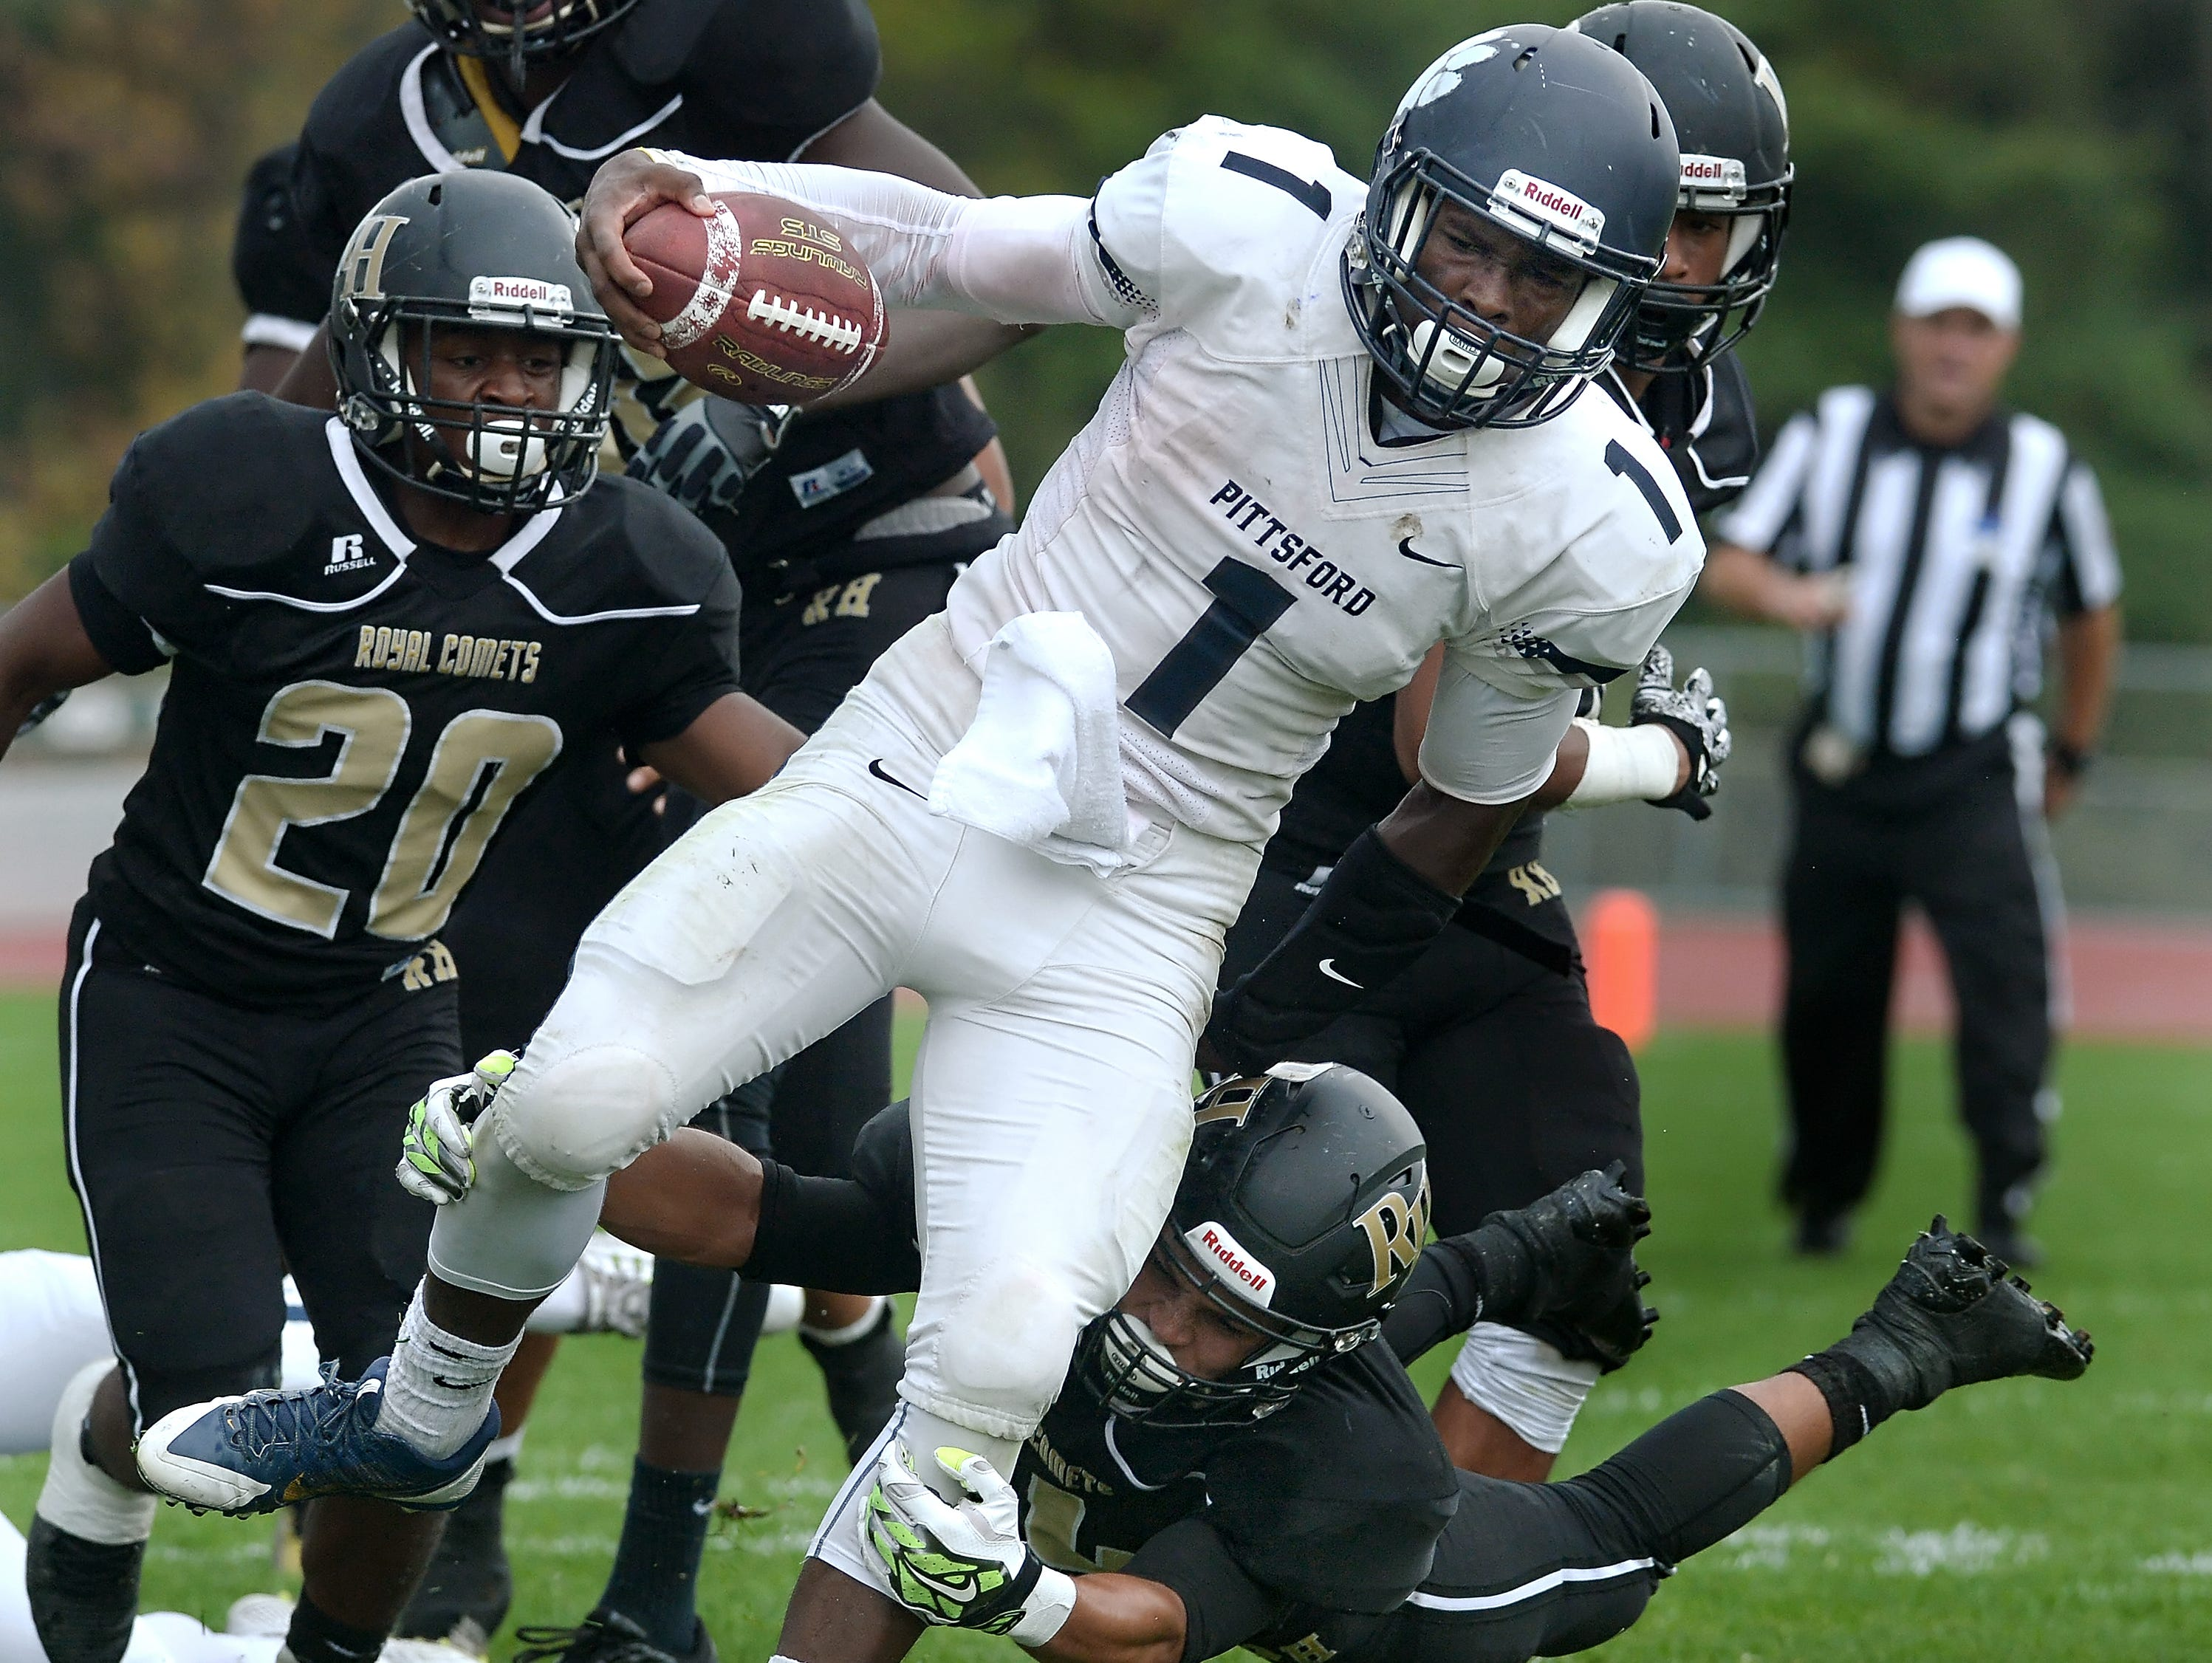 Pittsford's Josh Mack, front, was one of the 2014 Democrat and Chronicle All-Greater Rochester running backs.